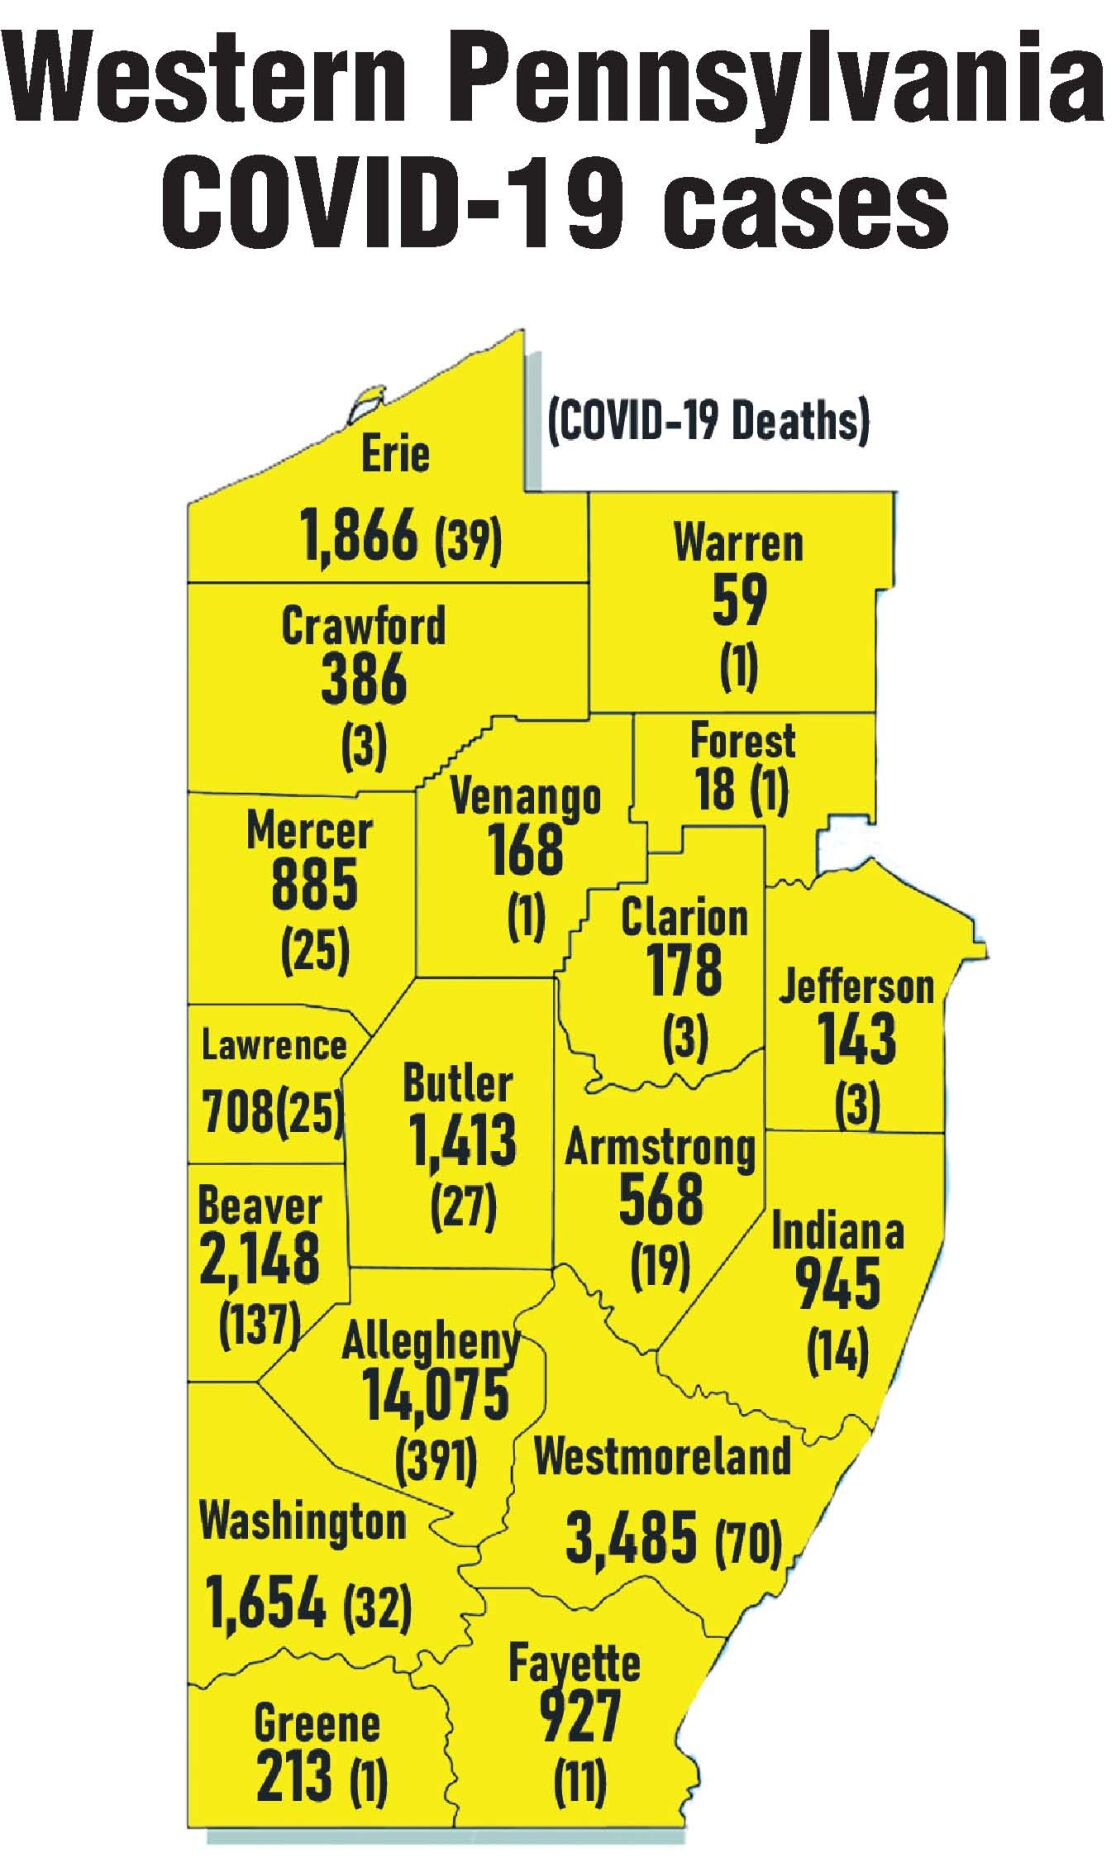 Venango, Clarion, Forest add to COVID-19 totals